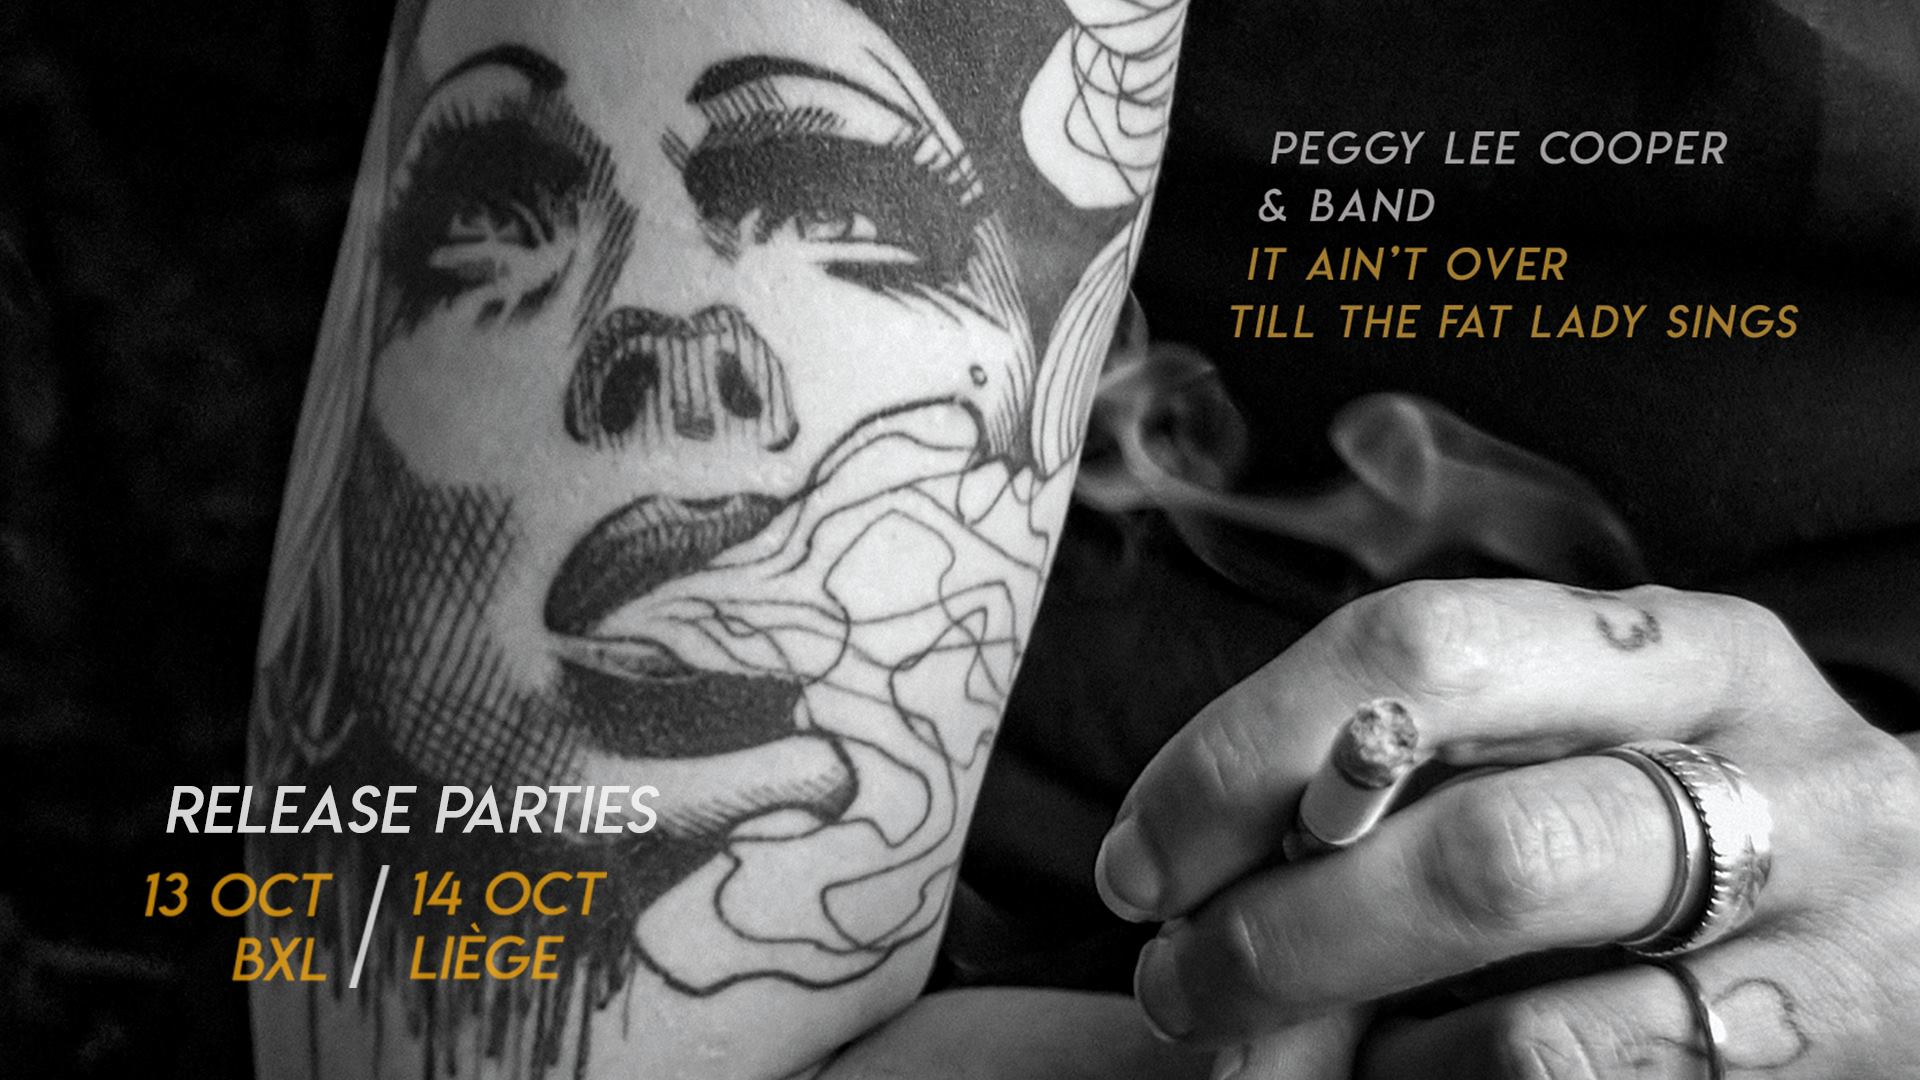 14/10 – Peggy Lee Cooper & Band / Album Release Party